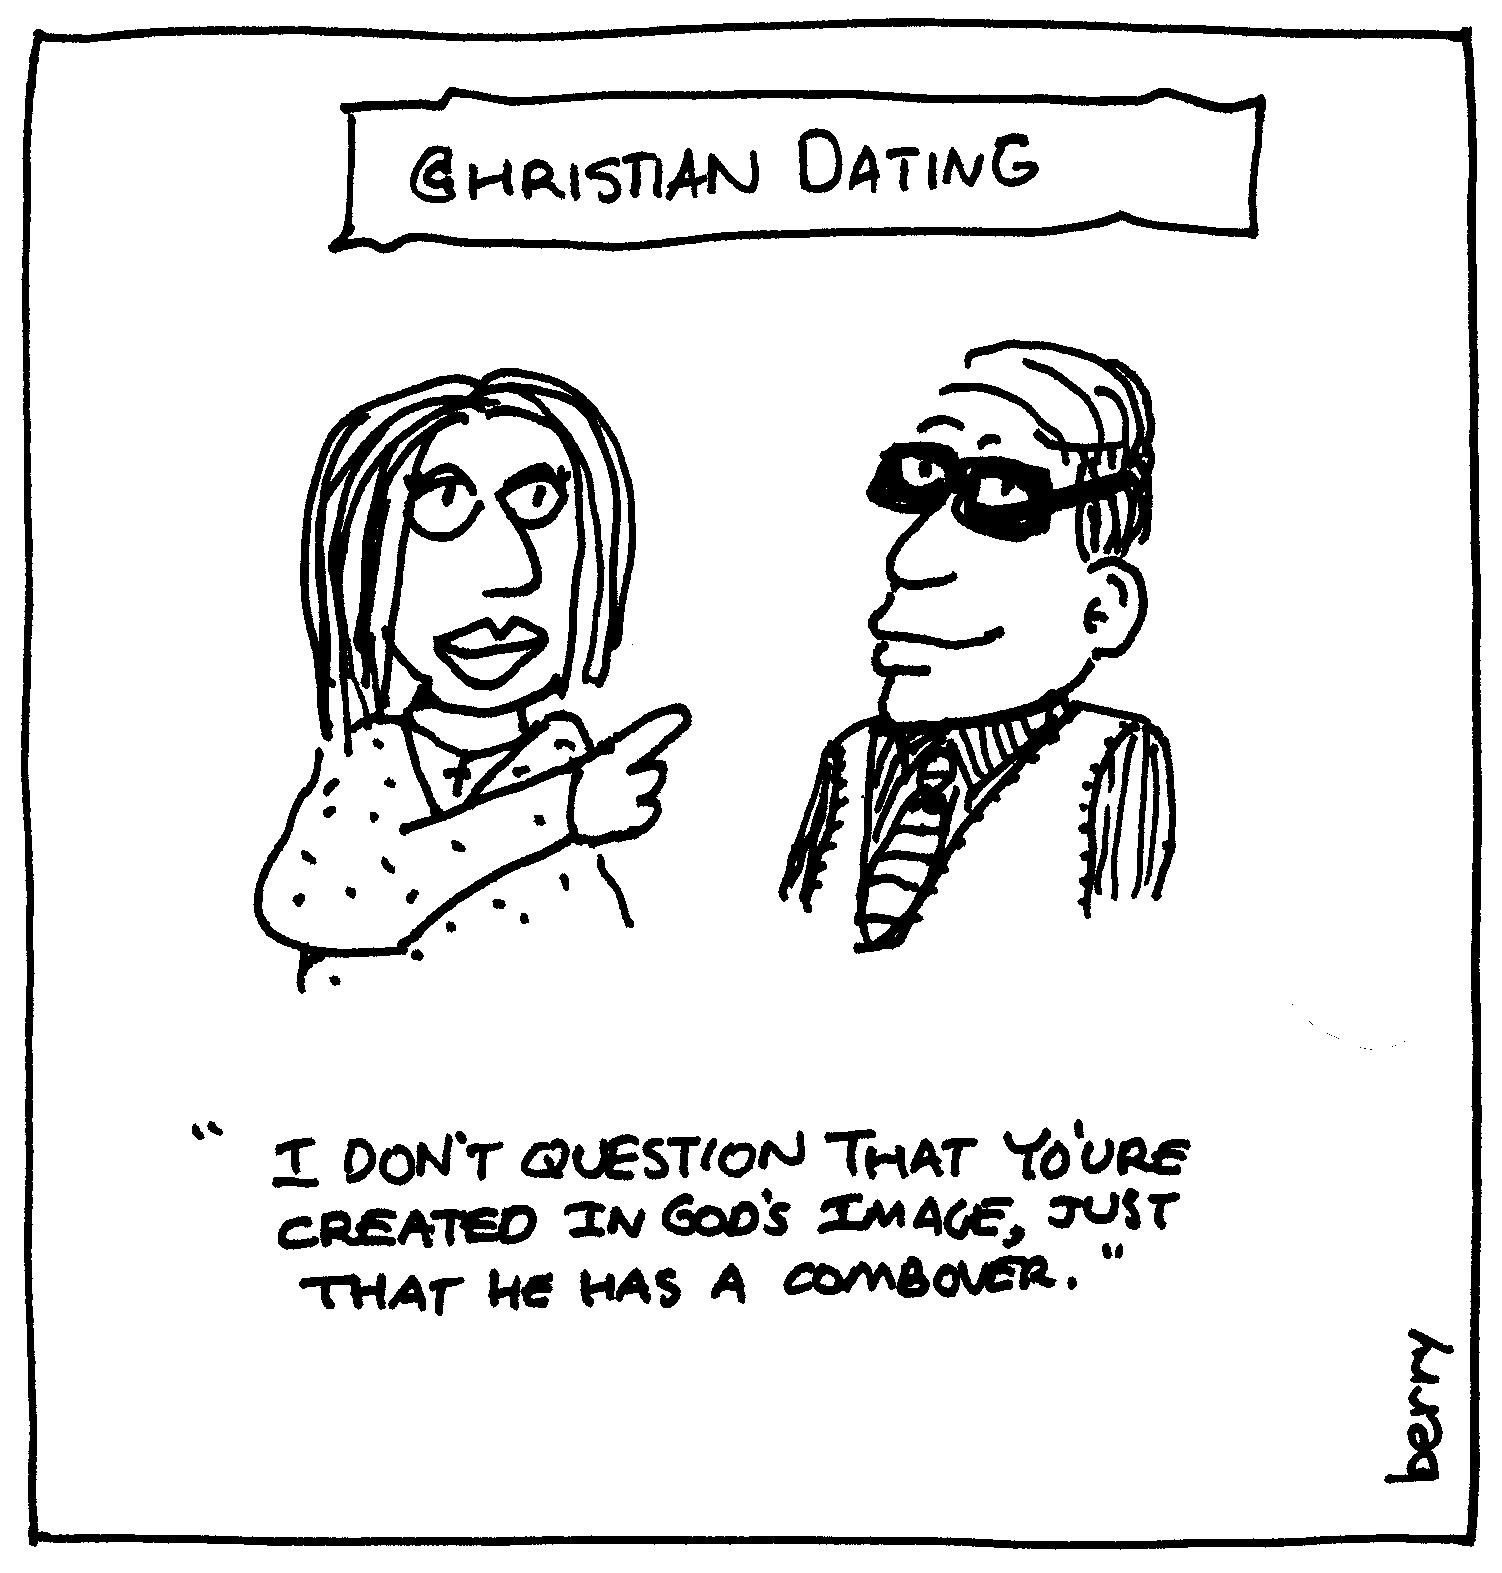 Satirical christian dating pictures